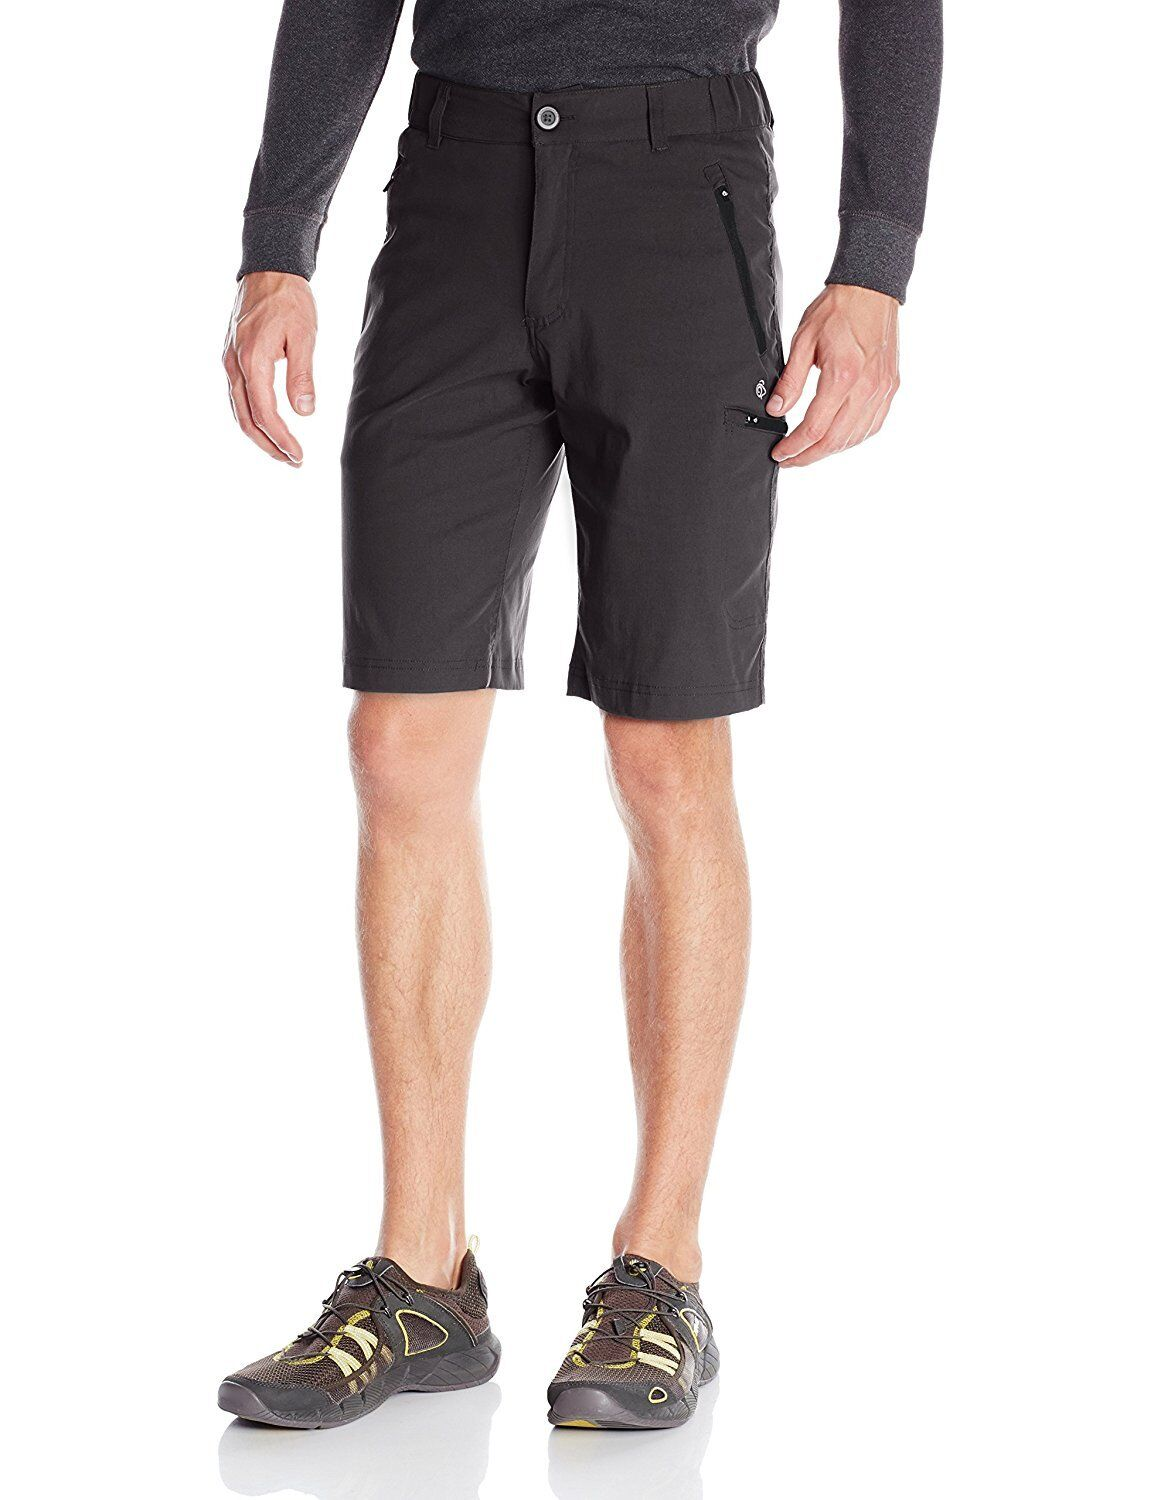 Craghoppers Mens Travel Stretch Kiwi Pro Active Long Shorts .99 Free Post